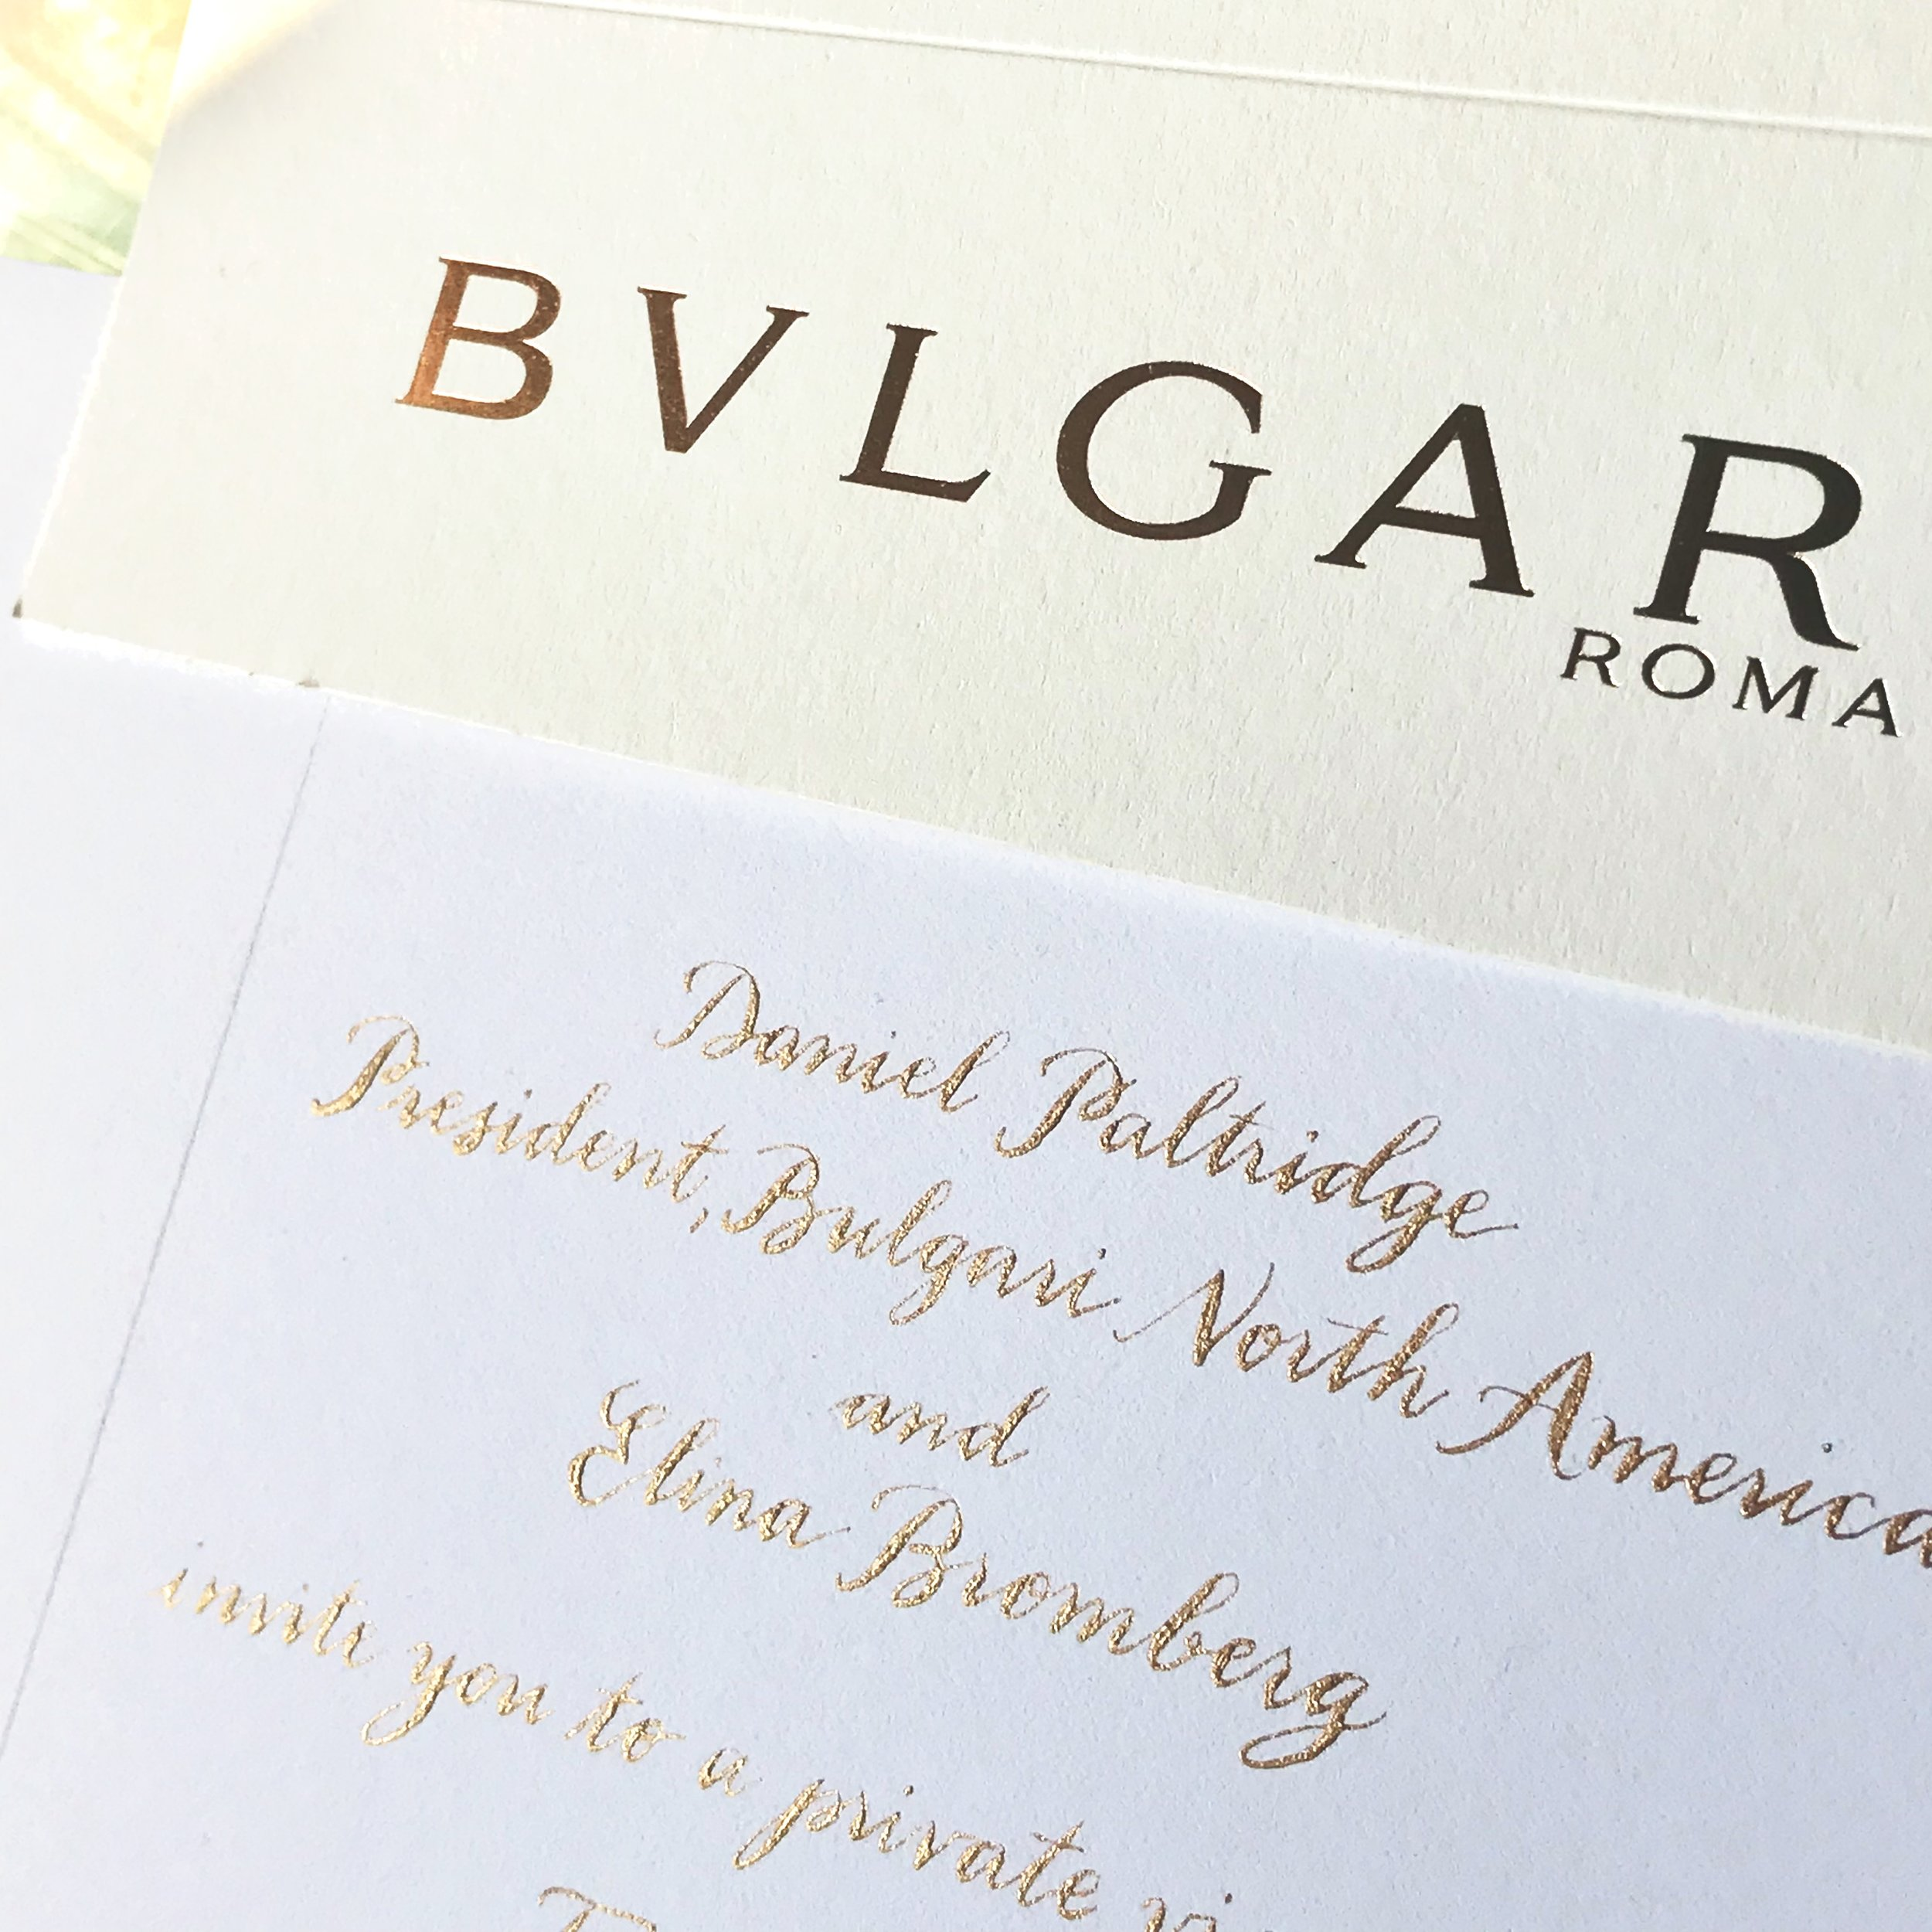 Bulgari Invitation